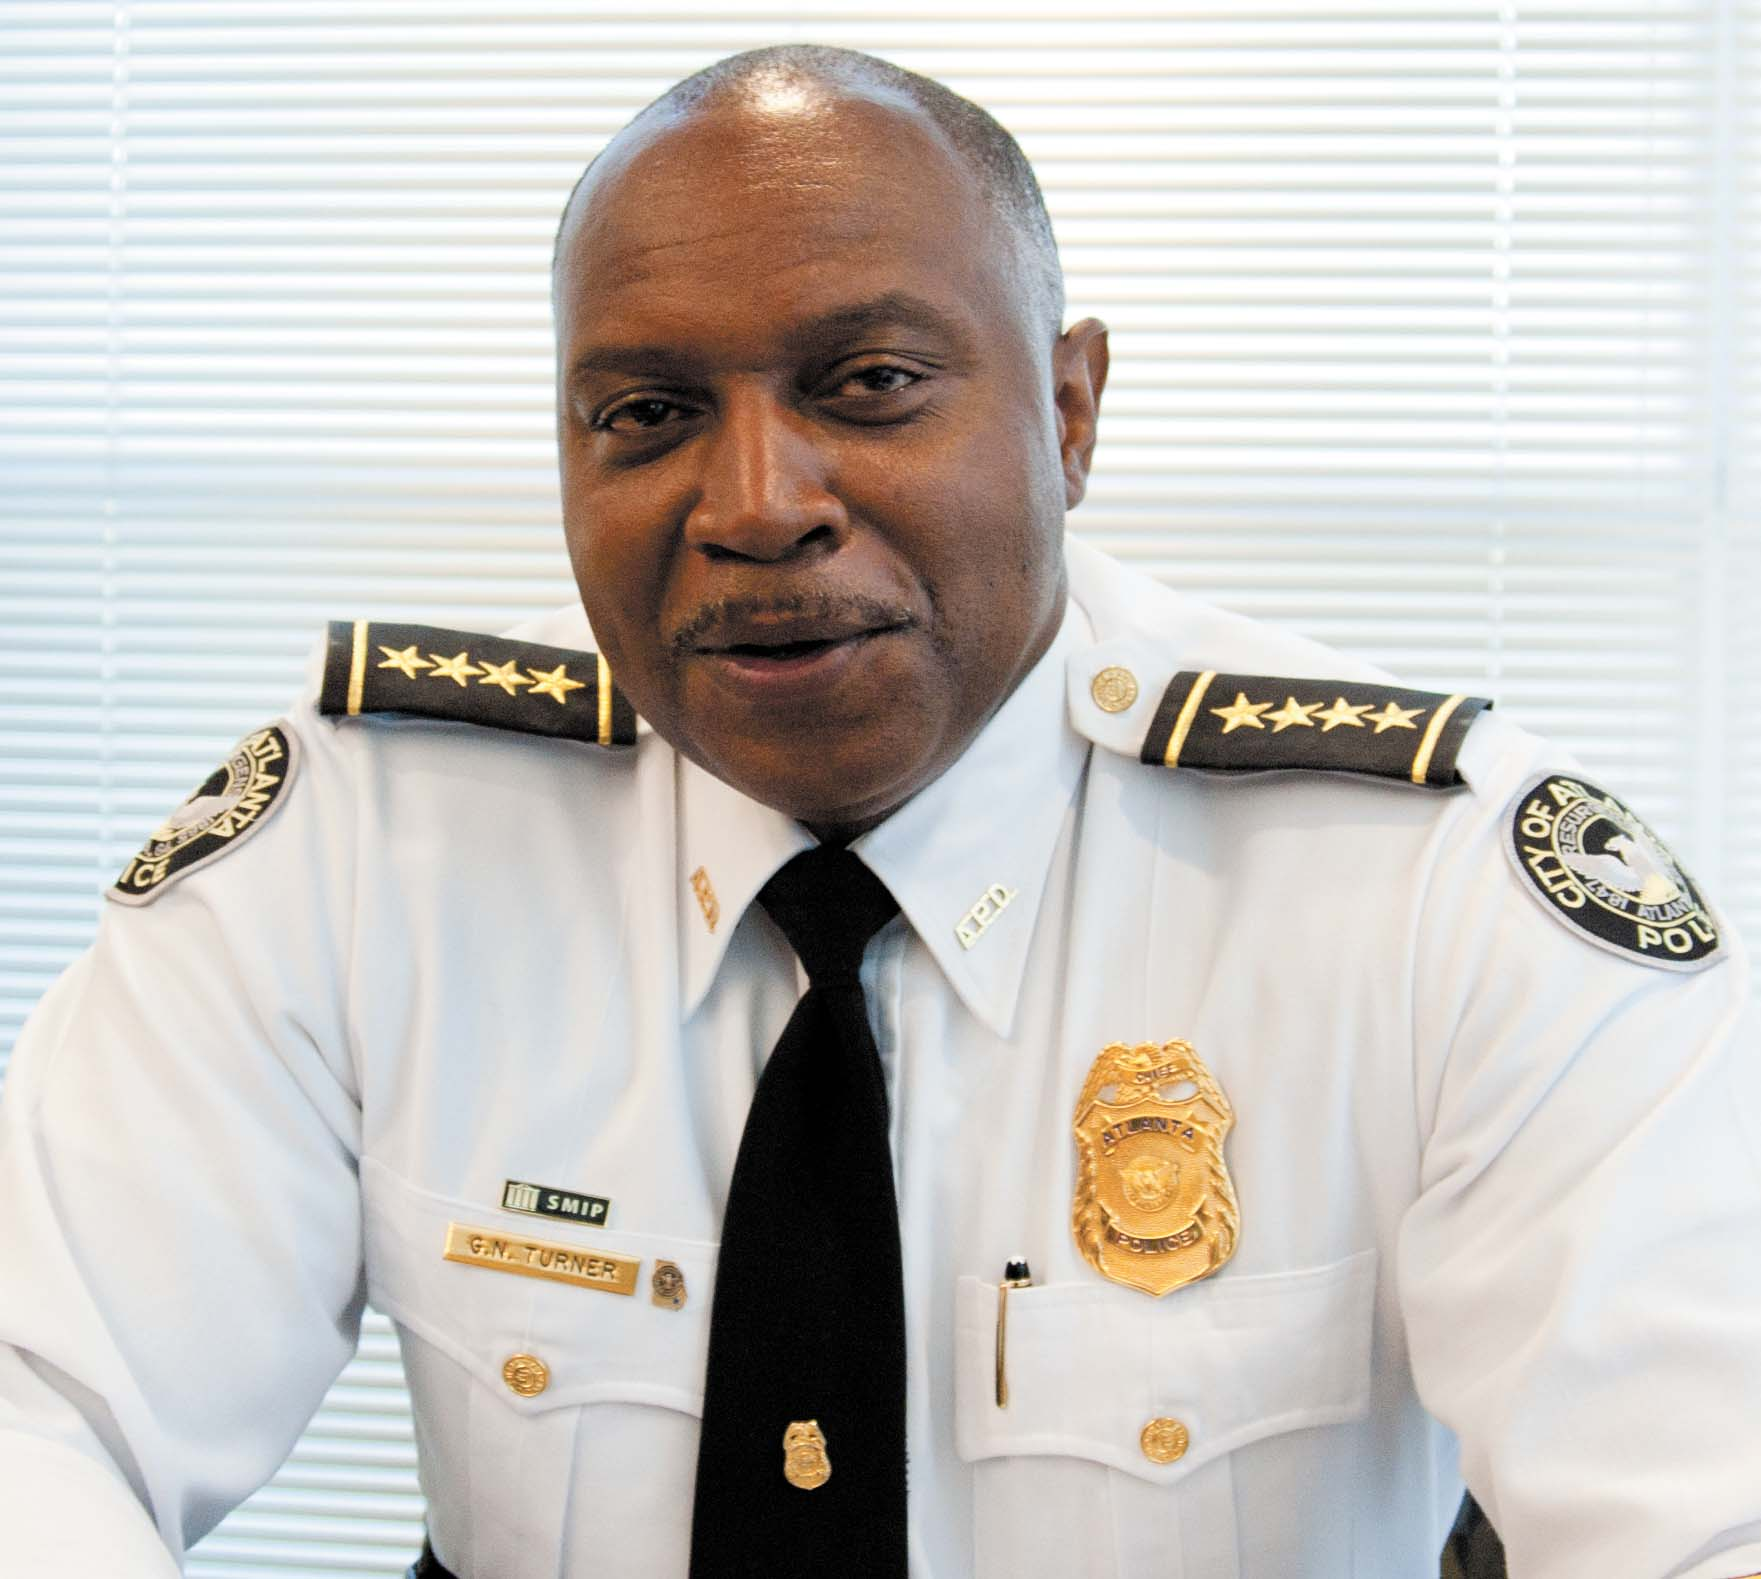 APD Chief George Turner talks public safety at Buckhead Business Association lunch